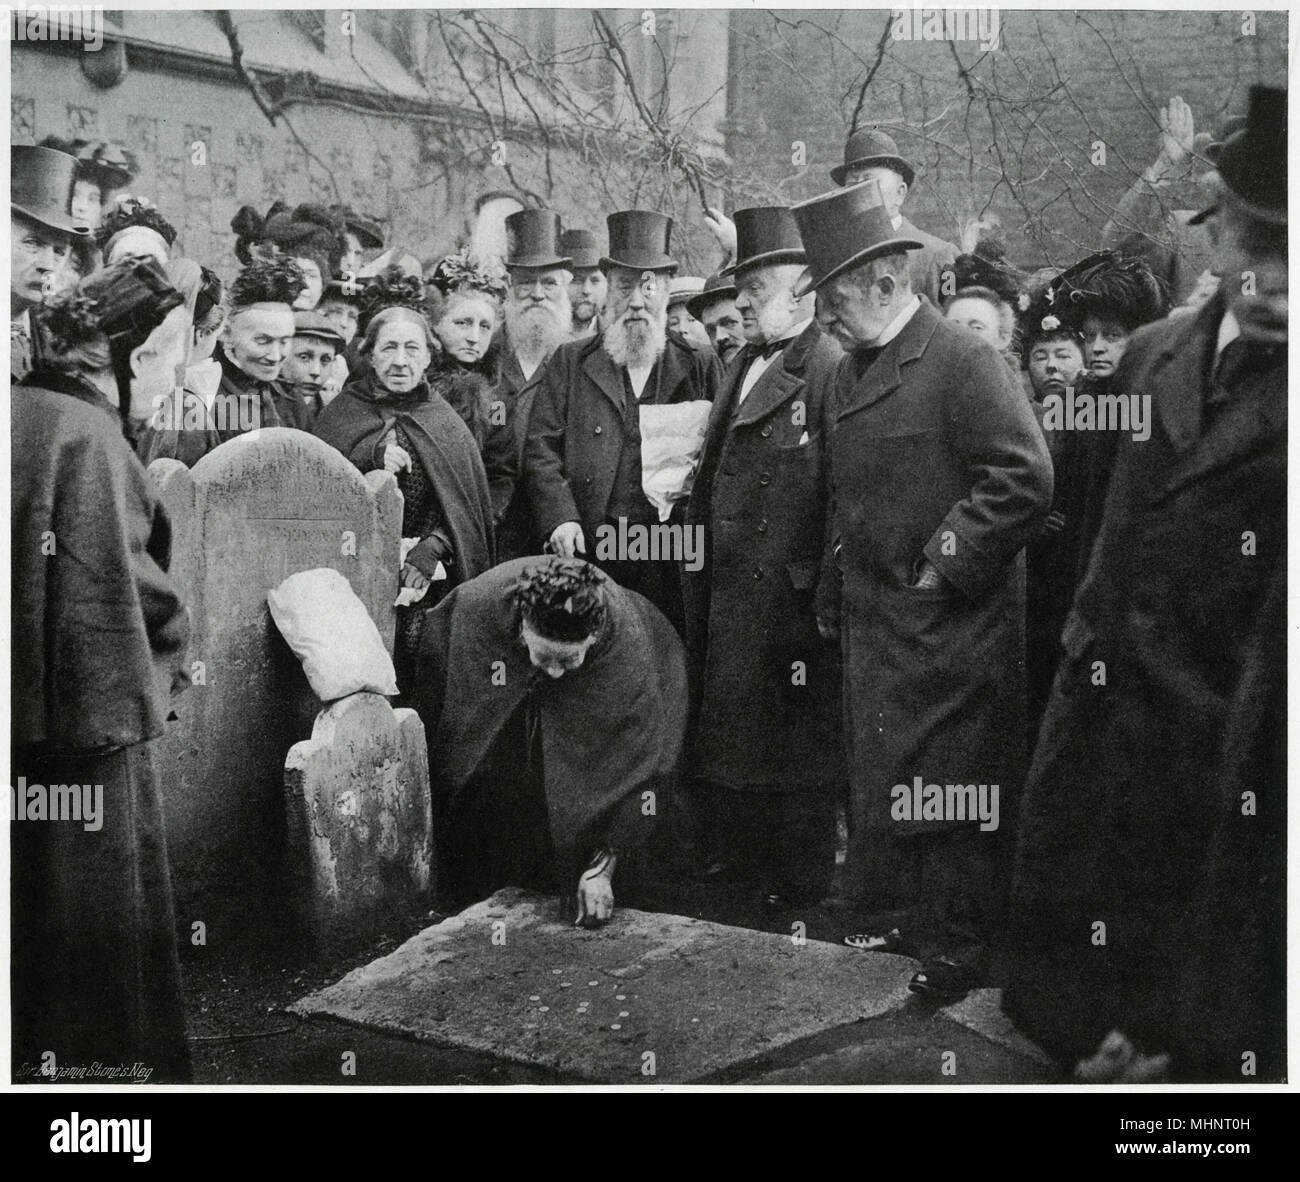 Centuries-old tradition, when twenty-one sixpences were placed upon a flat gravestone in the churchyard at St. Bartholomew in Smithfield, London, on Good Friday morning. Gathered are twenty-one aged widows with the church officials and a few spectators. Photograph showing a widow kneeling and picking up one of the sixpences, on rising she receives a freshly-baked  hot-cross bun from another gentleman, who then assists her to walk over the stone, subsequently each widow is presented with a penny and hot-cross bun the gift from the churchwarden.     Date: 1902 - Stock Image